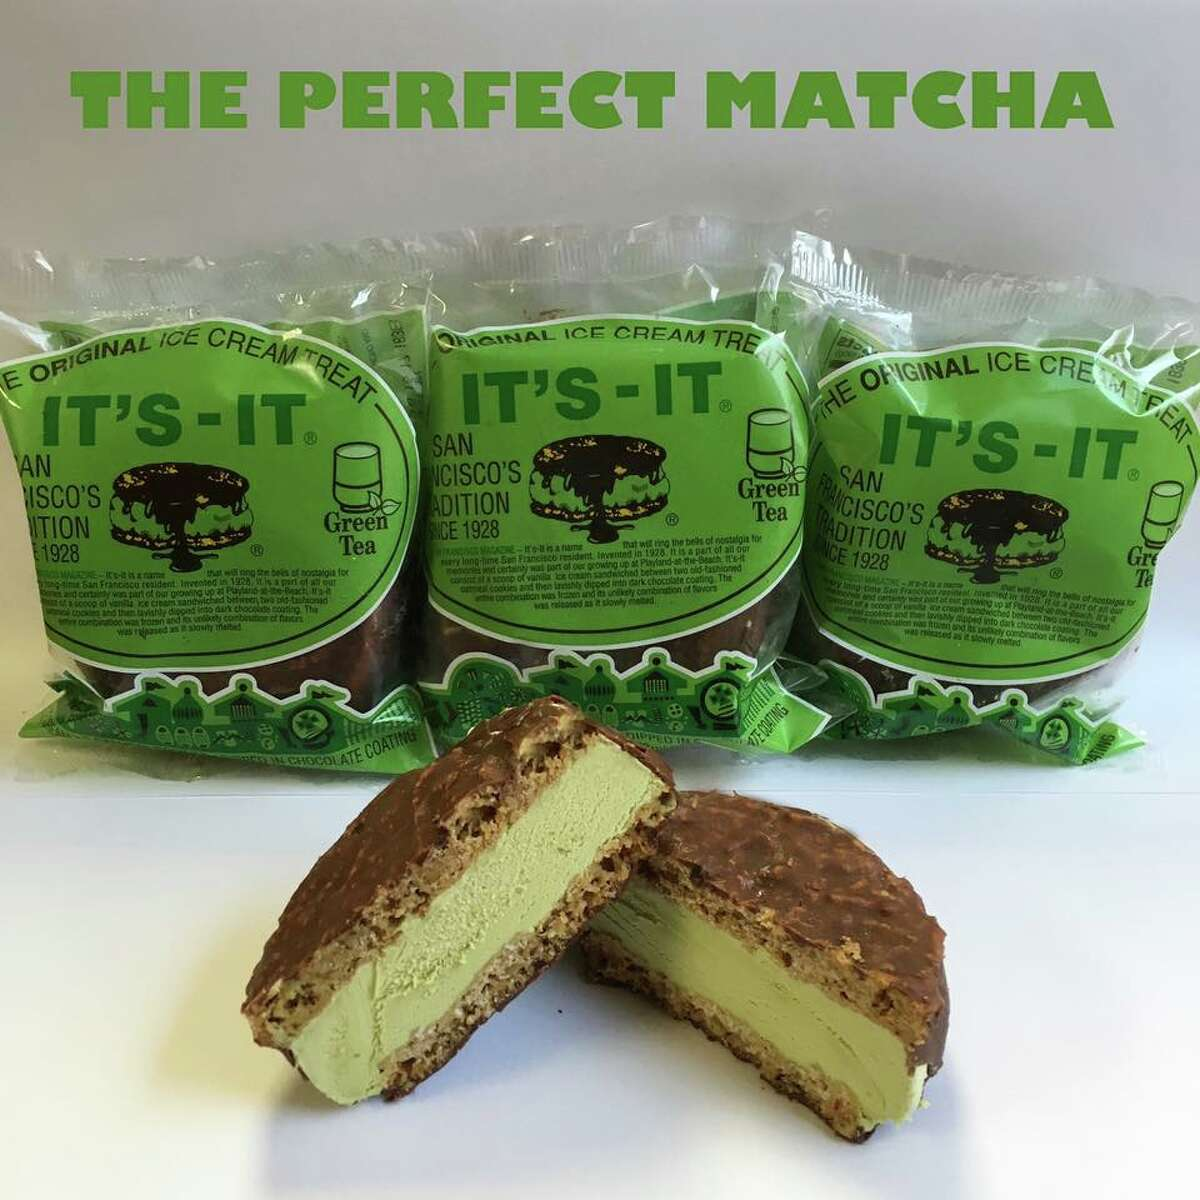 It's-It now makes a new flavor of their famous ice cream sandwiches: green tea.